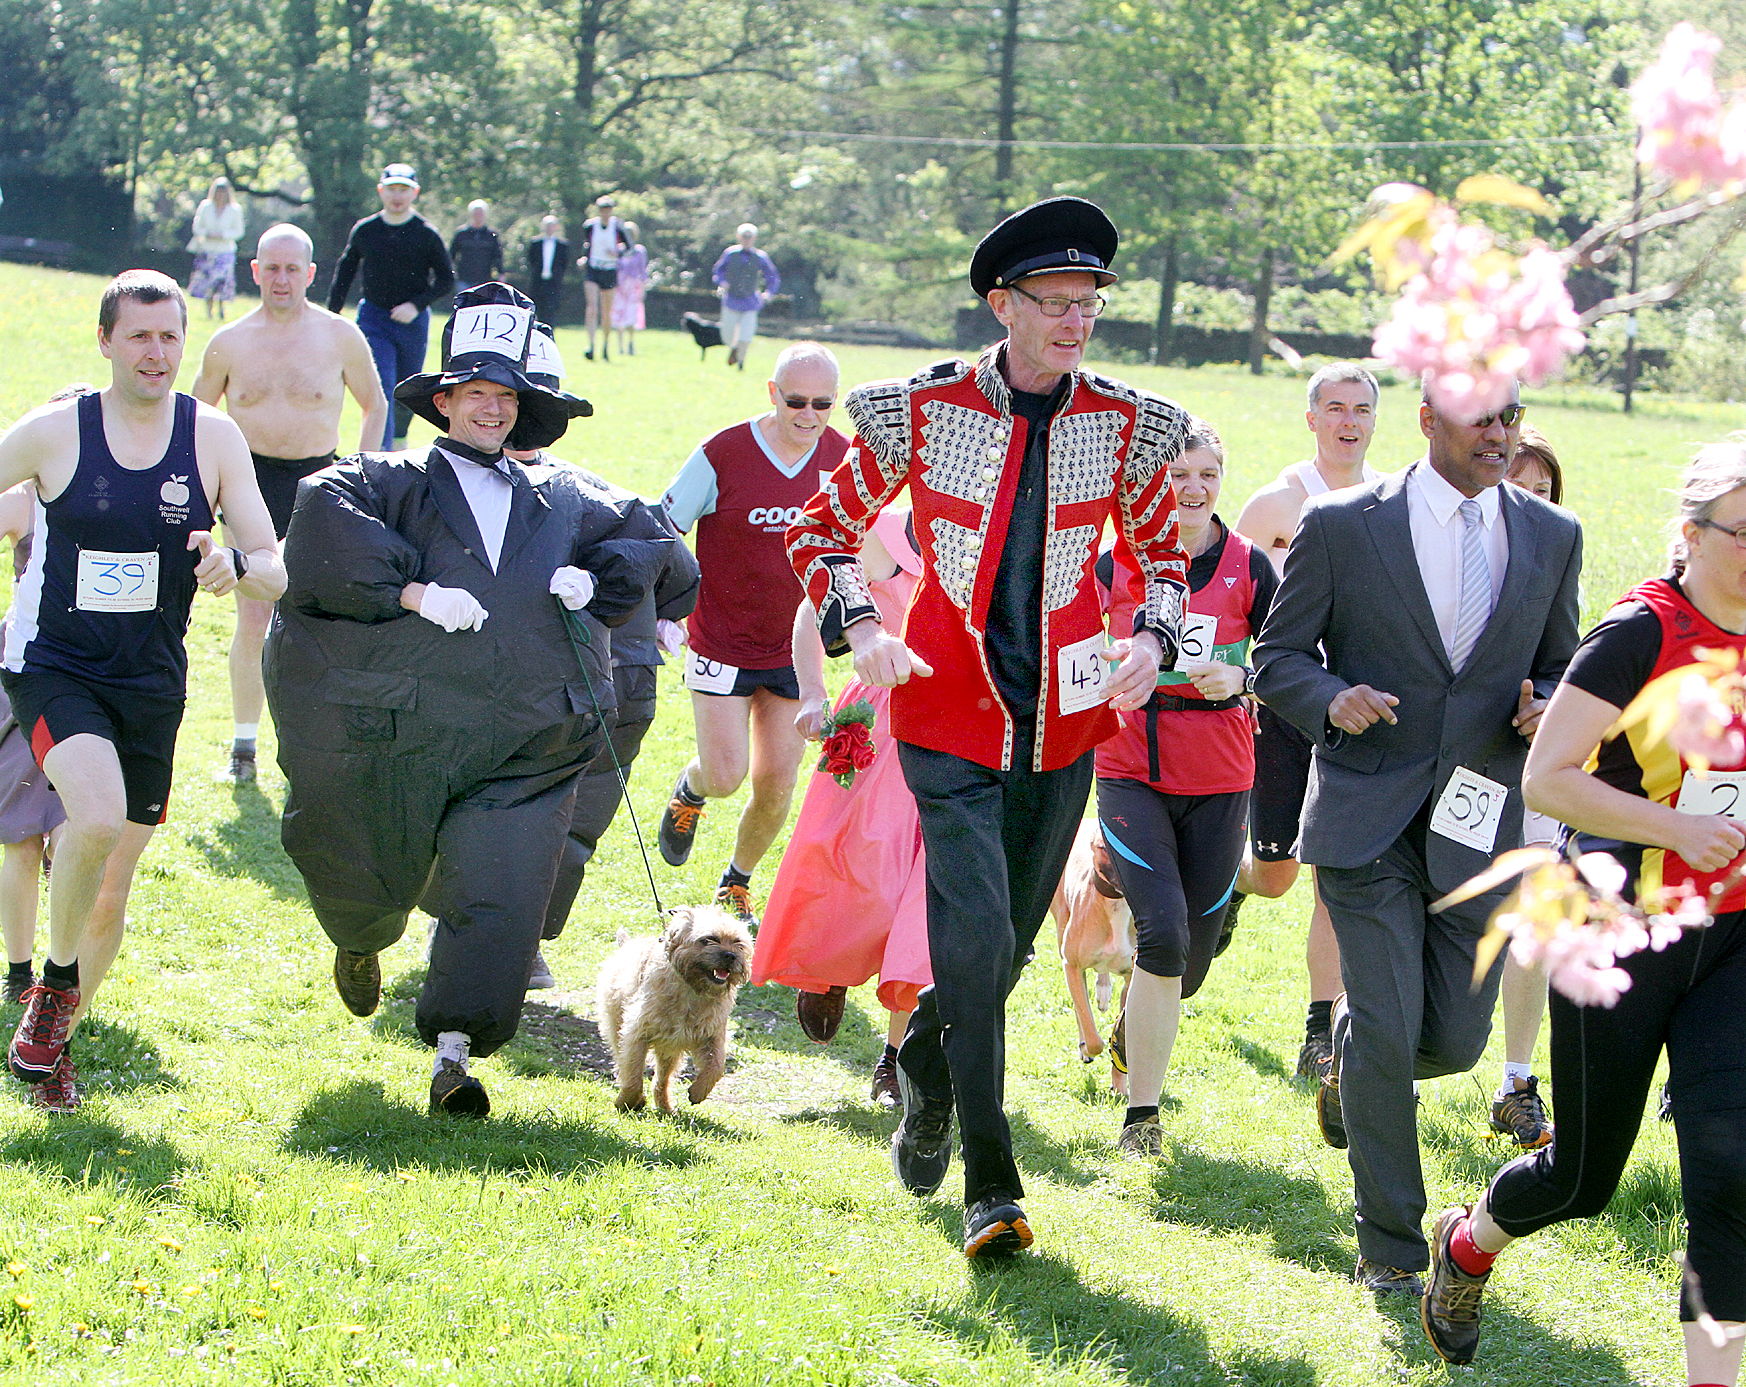 THE RUNAWAY BRIDE: Above, runners in fancy dress taking part